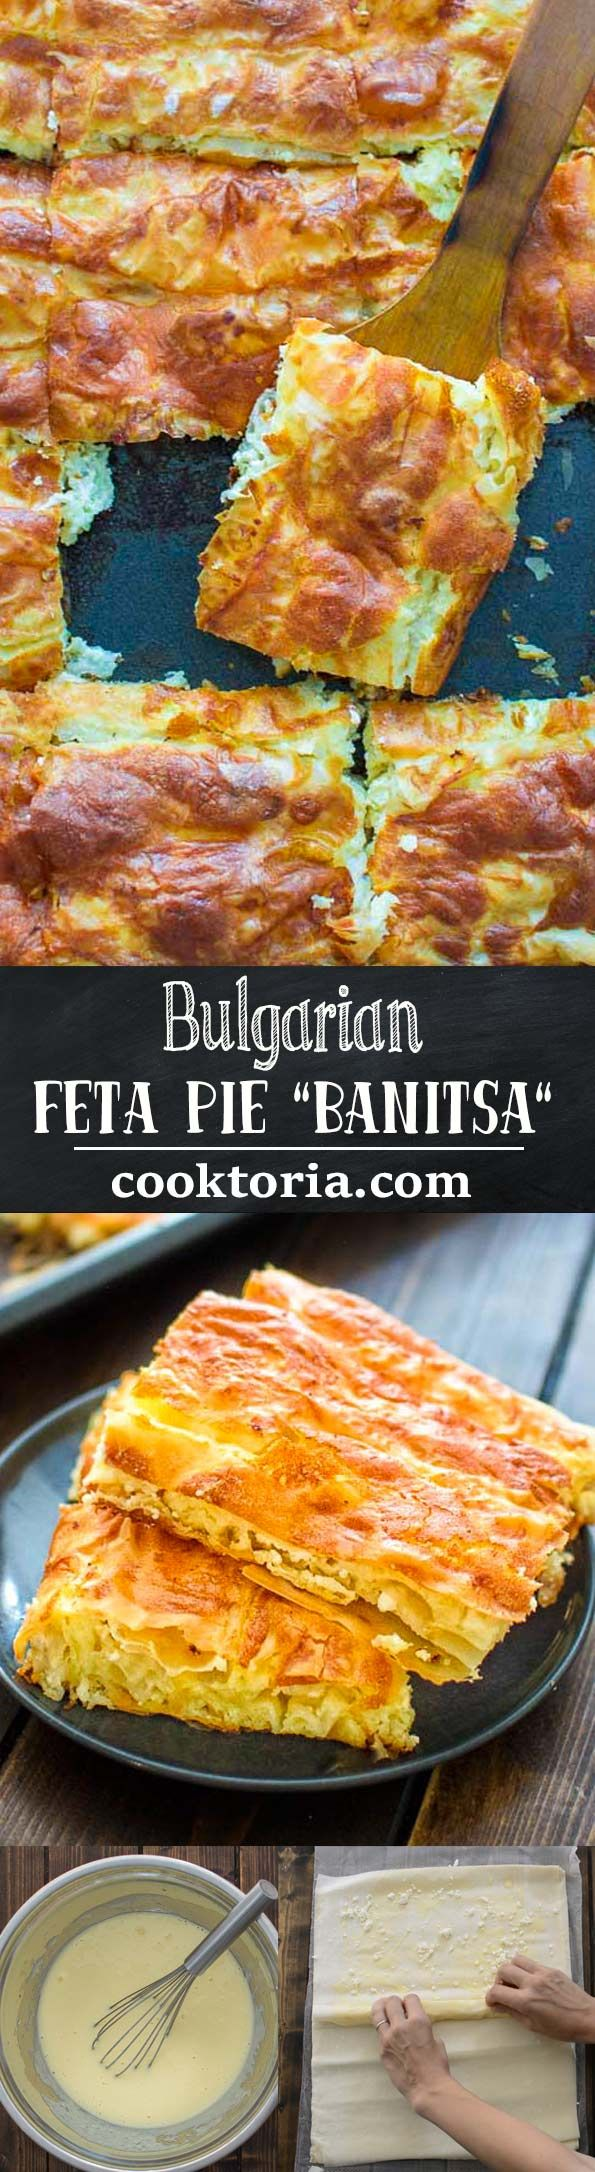 """This delicious Bulgarian Feta Pie """"Banitsa"""" is a true gem of Balkan cuisine. Made with layers of filo dough, crumbled feta, and eggs, it makes a perfect breakfast or mid-day snack."""